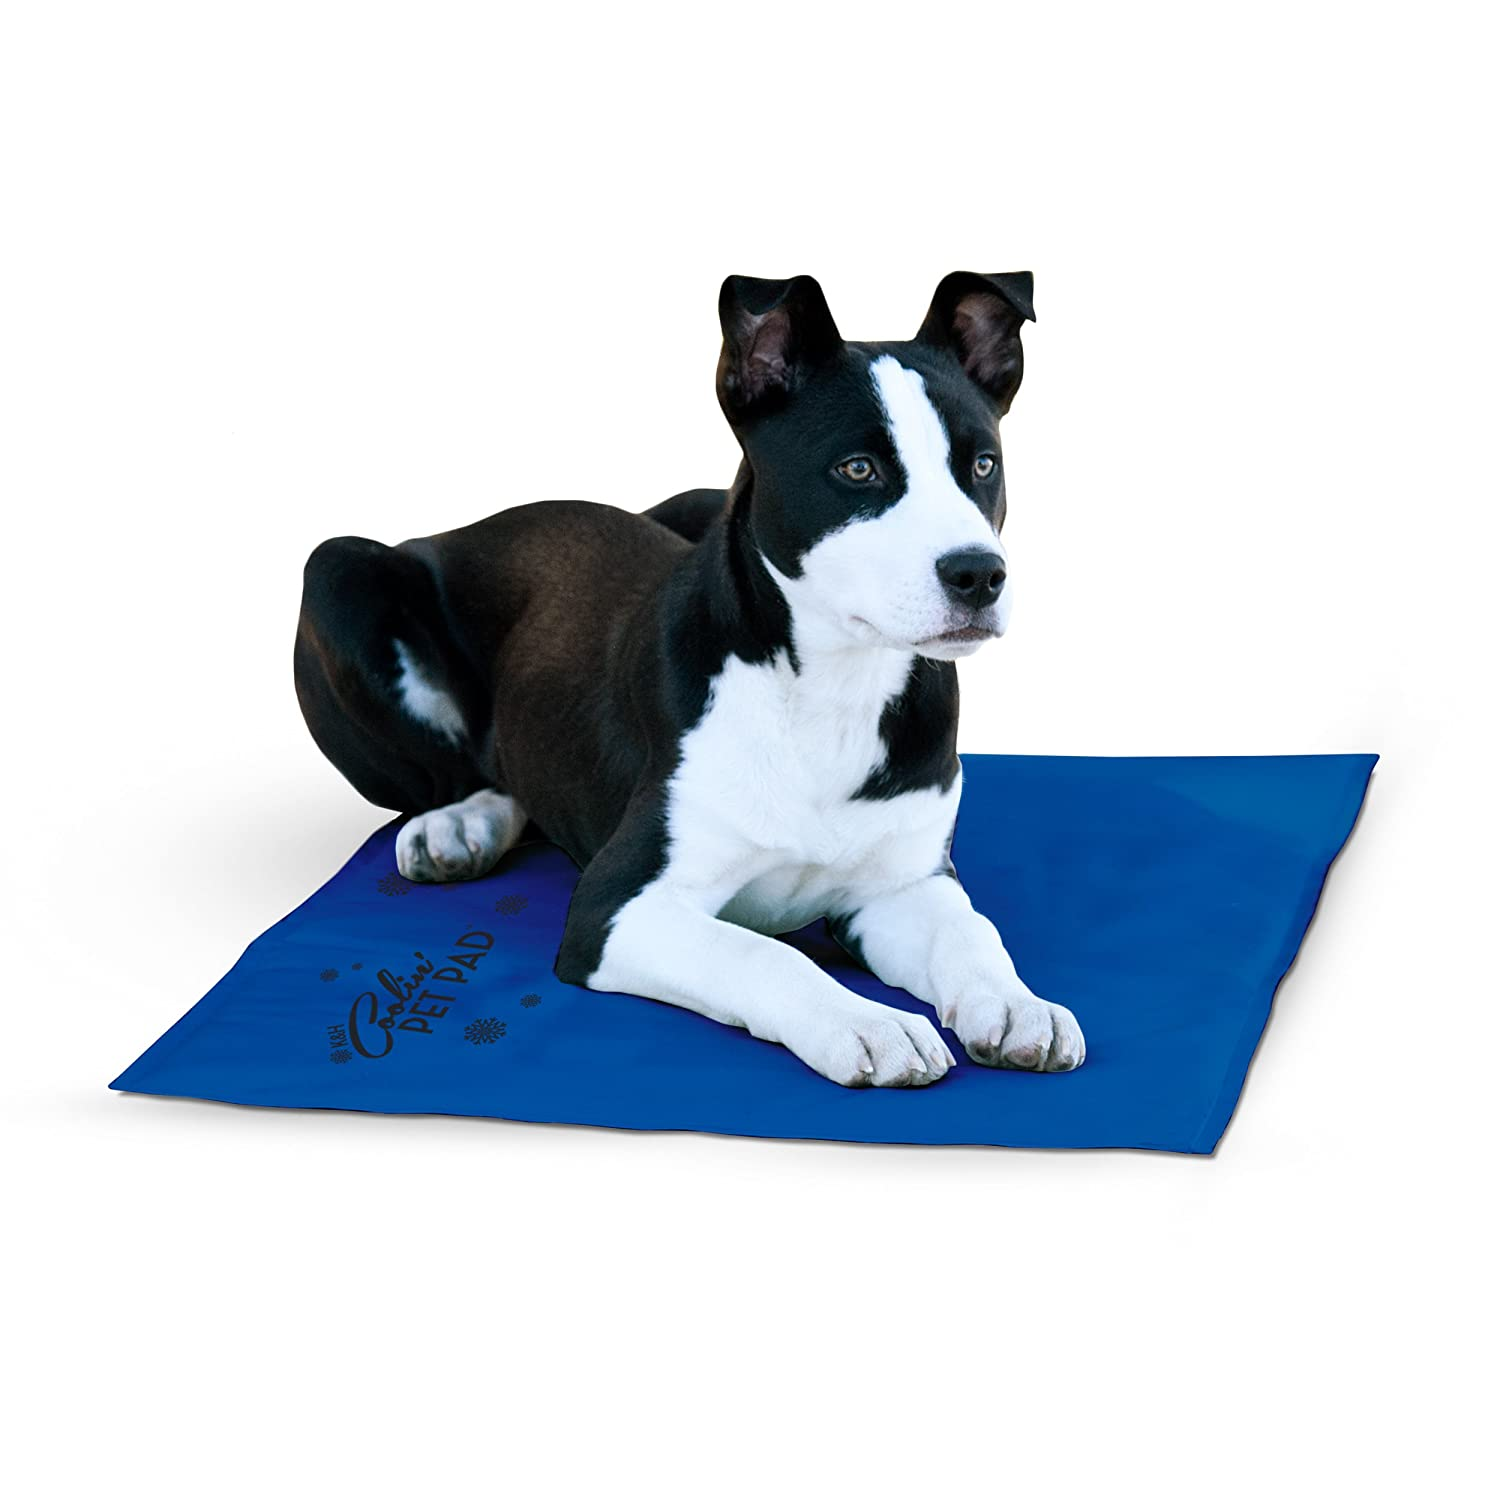 K&H Pet Products Coolin' Pet Pad - Non-Toxic Self-Cooling Pet Mat Pad